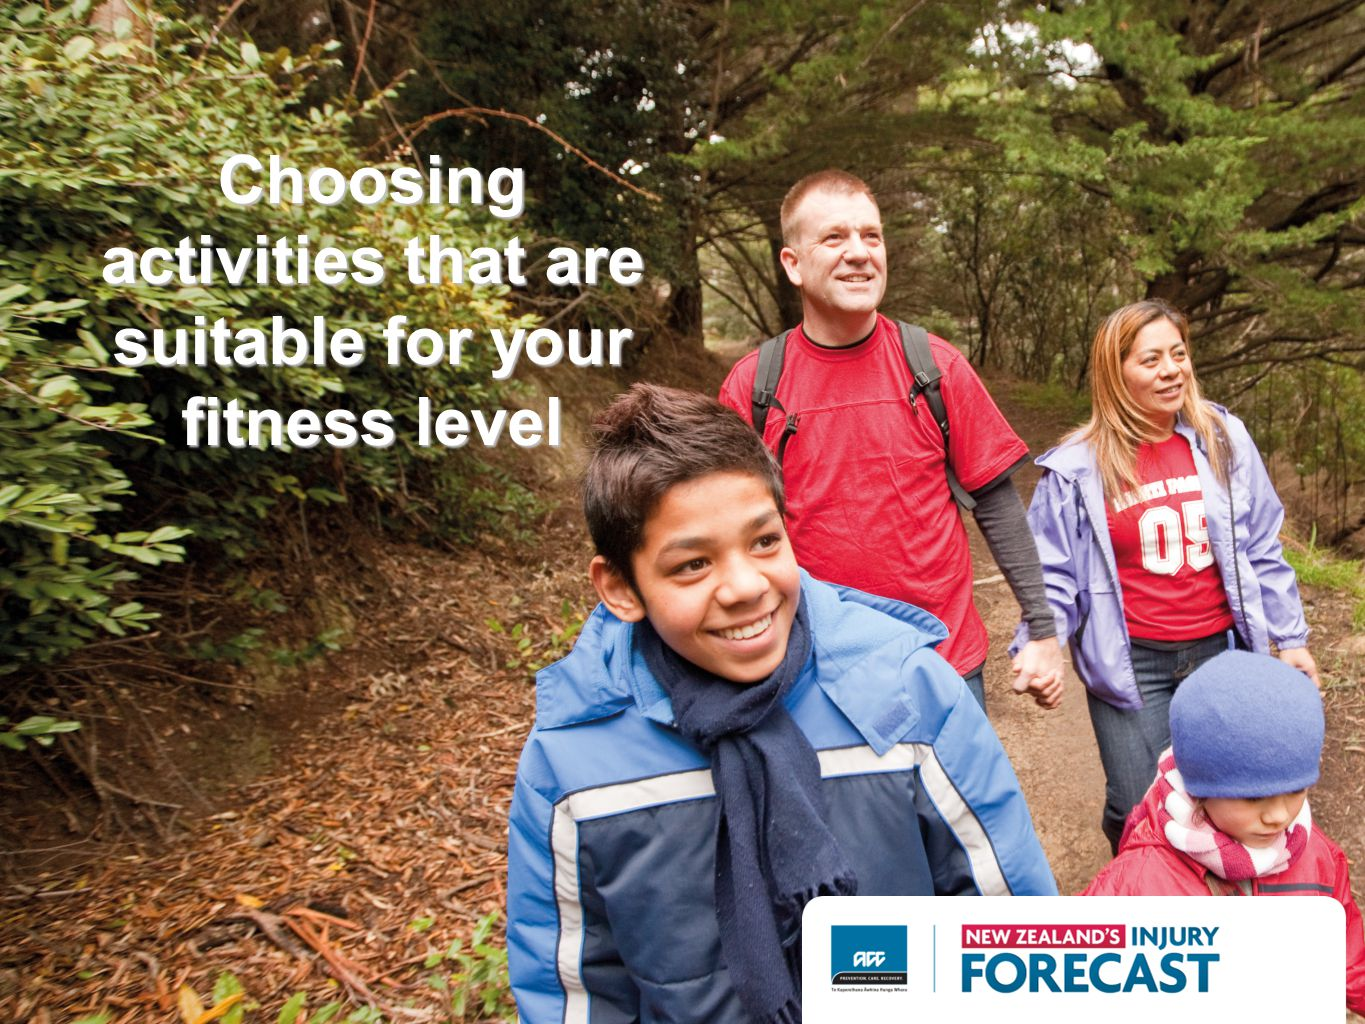 Choosing activities that are suitable for your fitness level